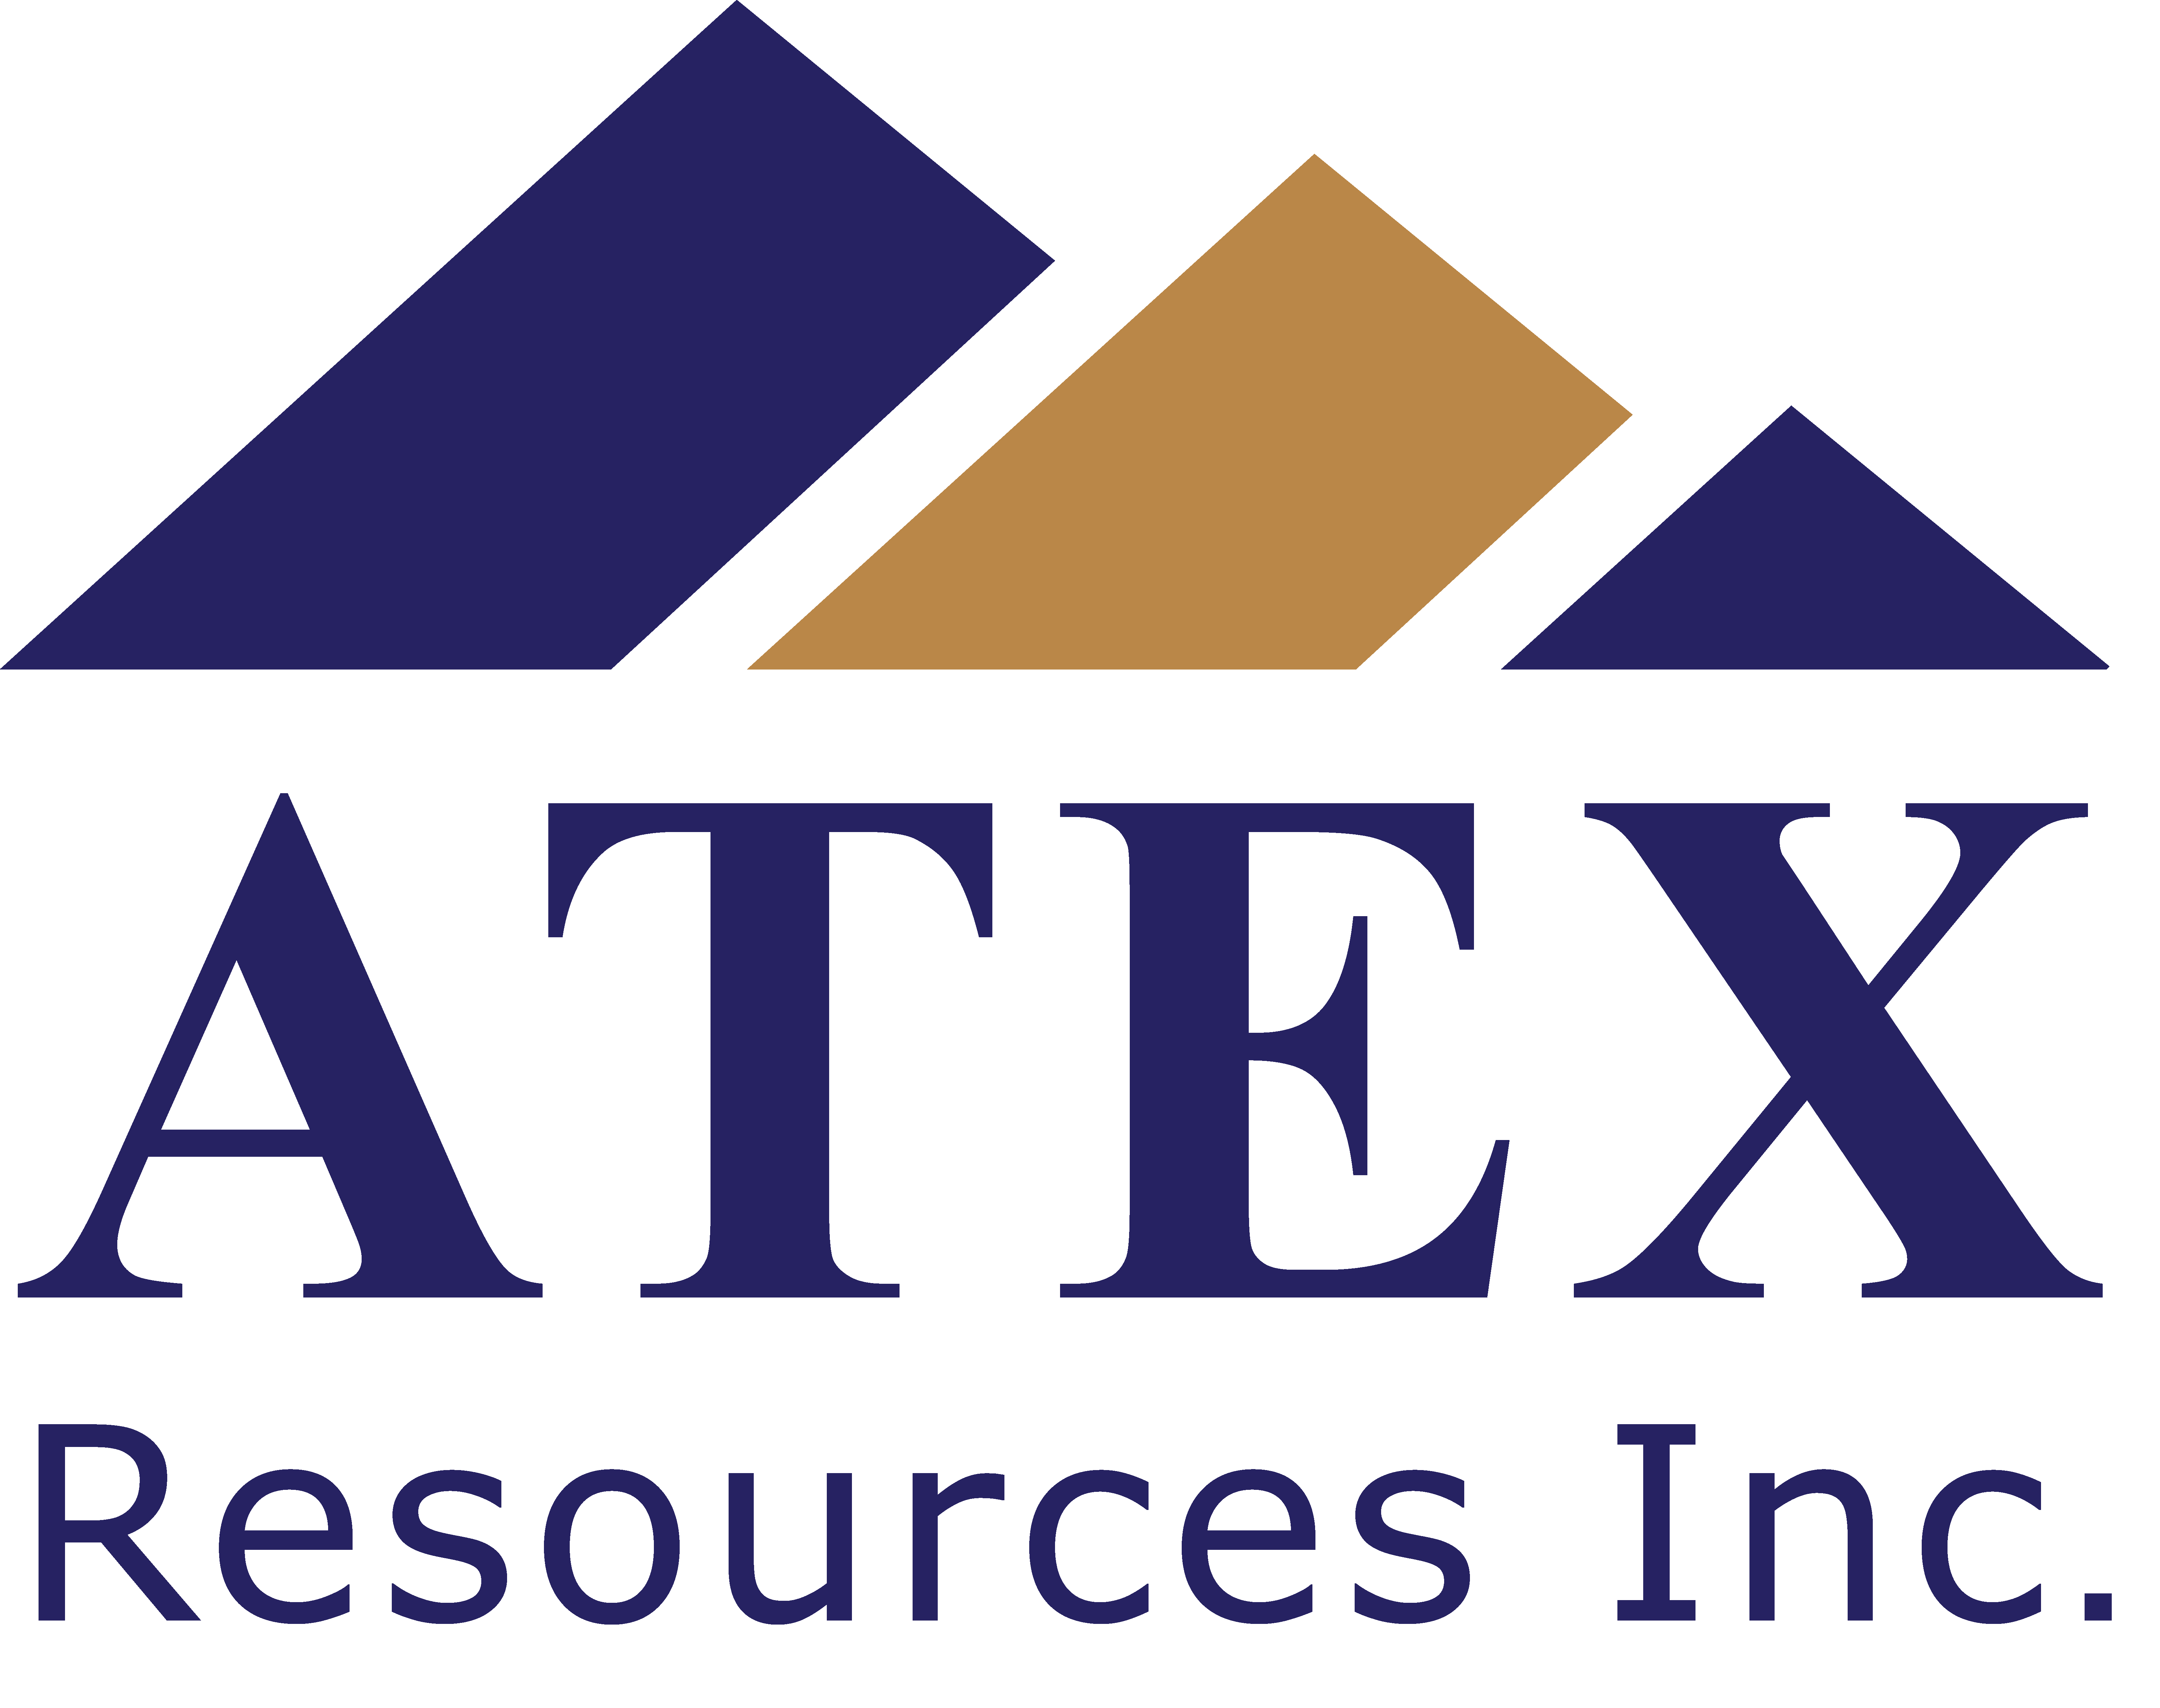 ATEX Resources Inc.